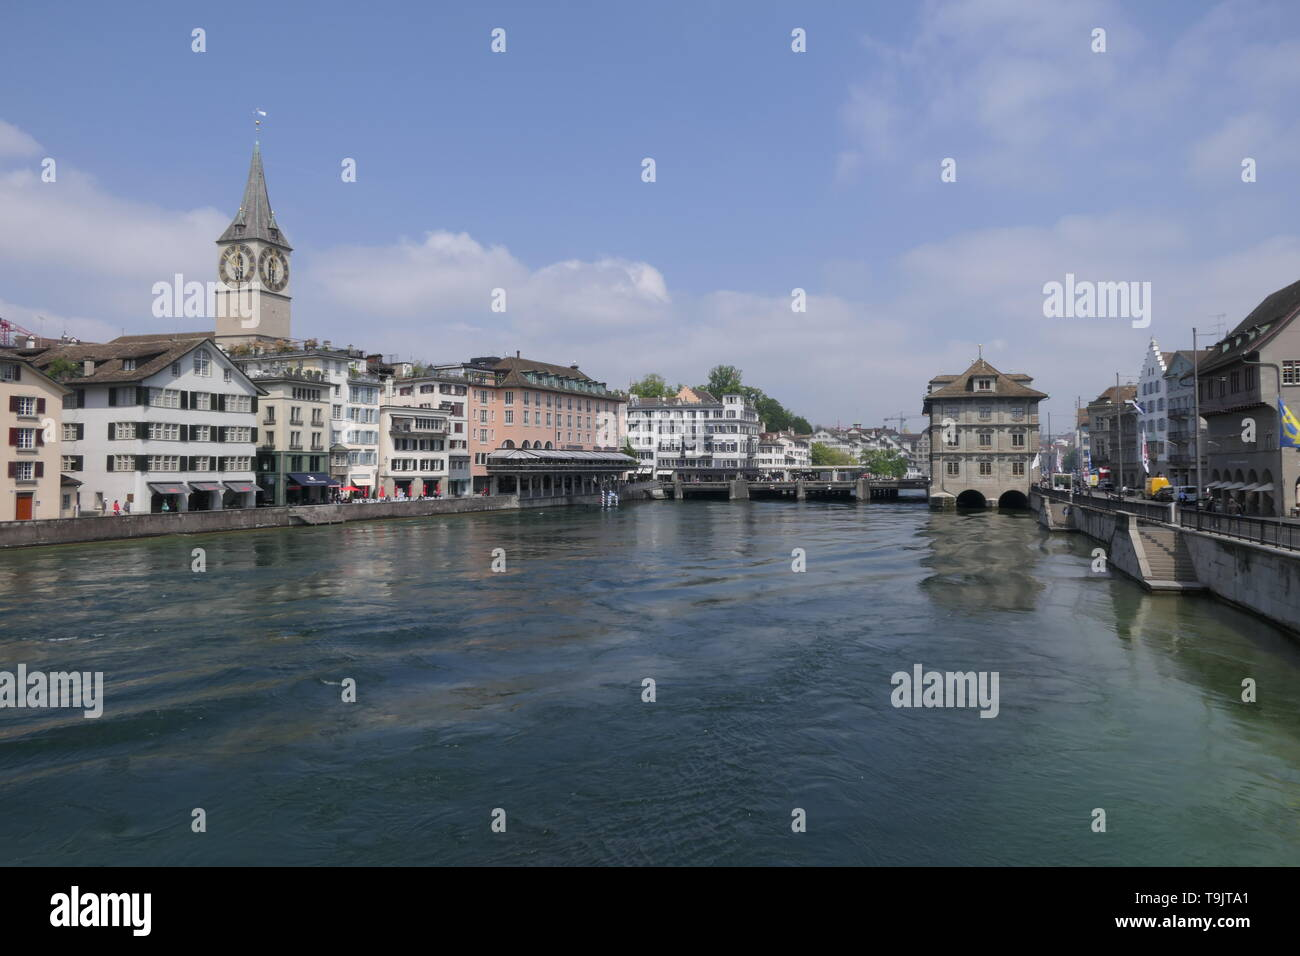 Panorama view over the oldtown of Zurich with St Peter Church, at Limmat river, Switzerland Stock Photo